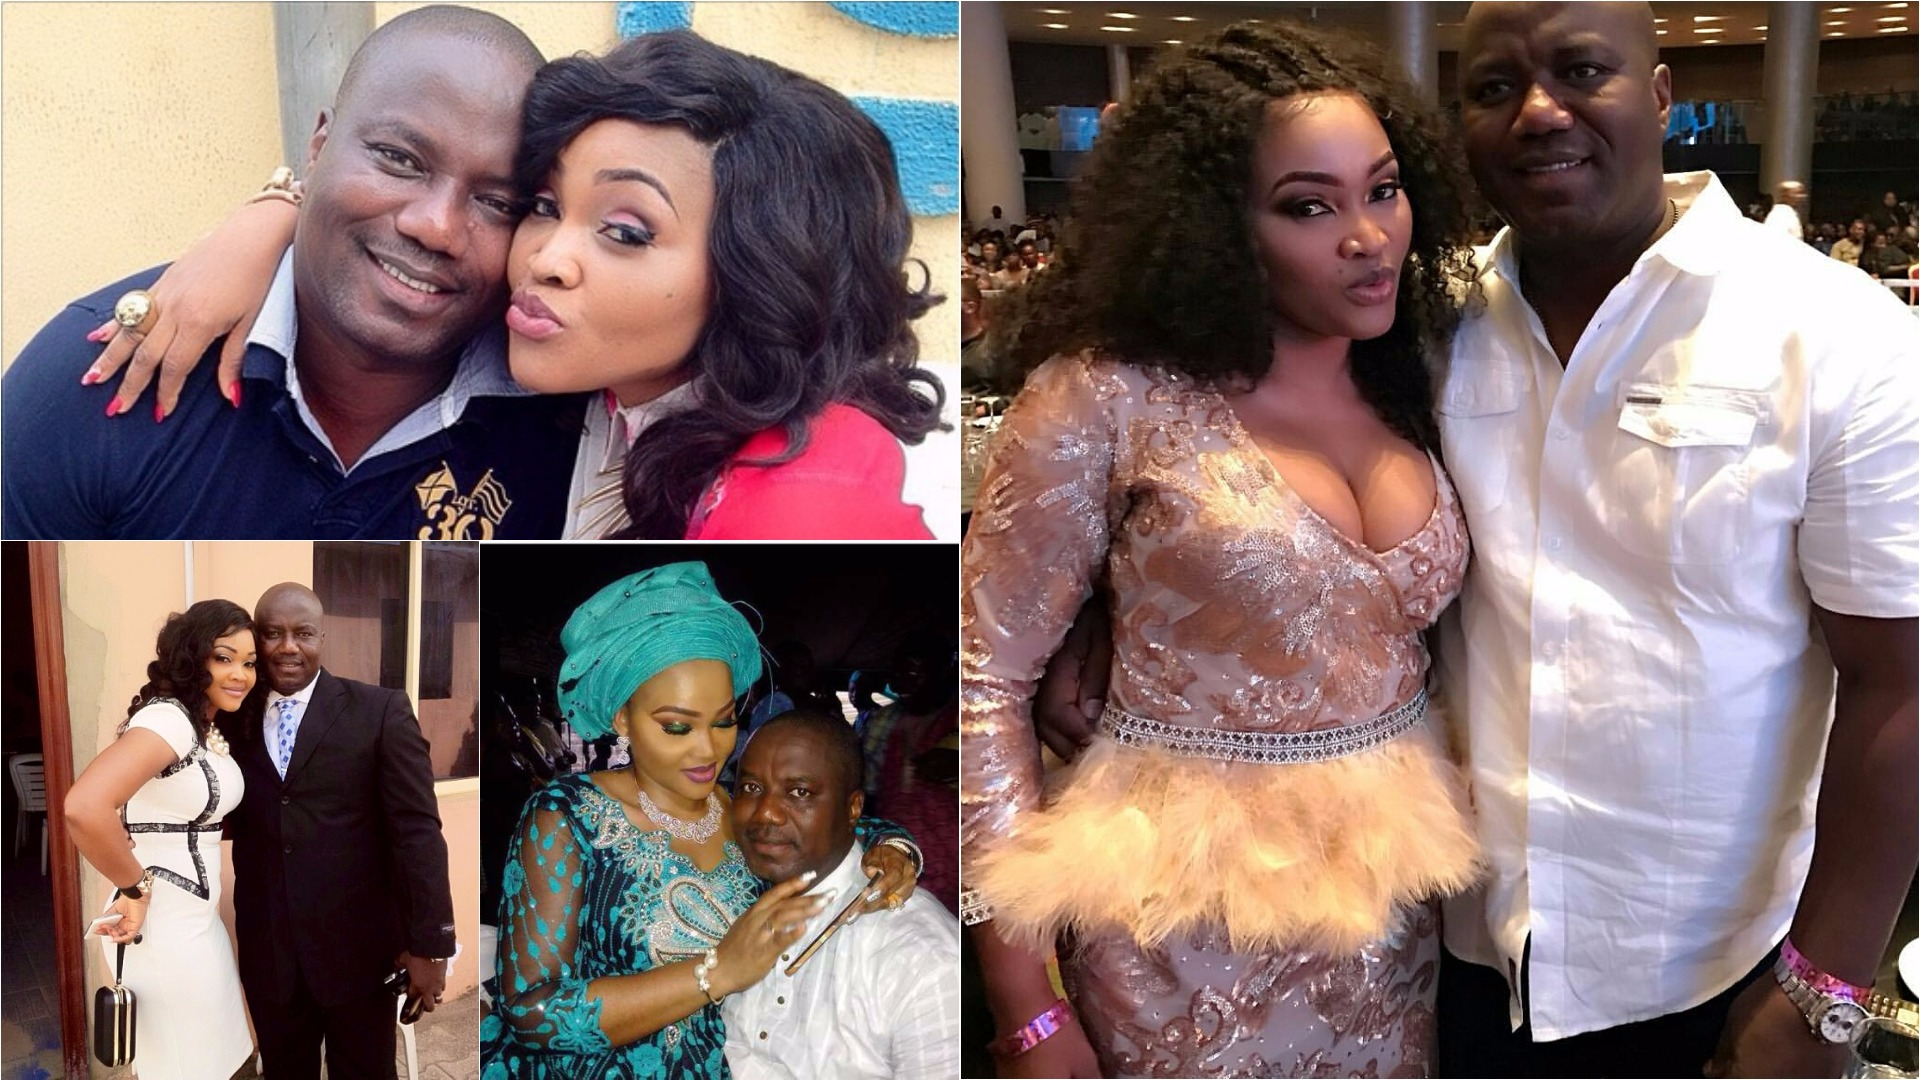 NET EXCLUSIVE: Inside the sordid tale of mutual infidelity and financial crisis that crashed Mercy Aigbe's marriage